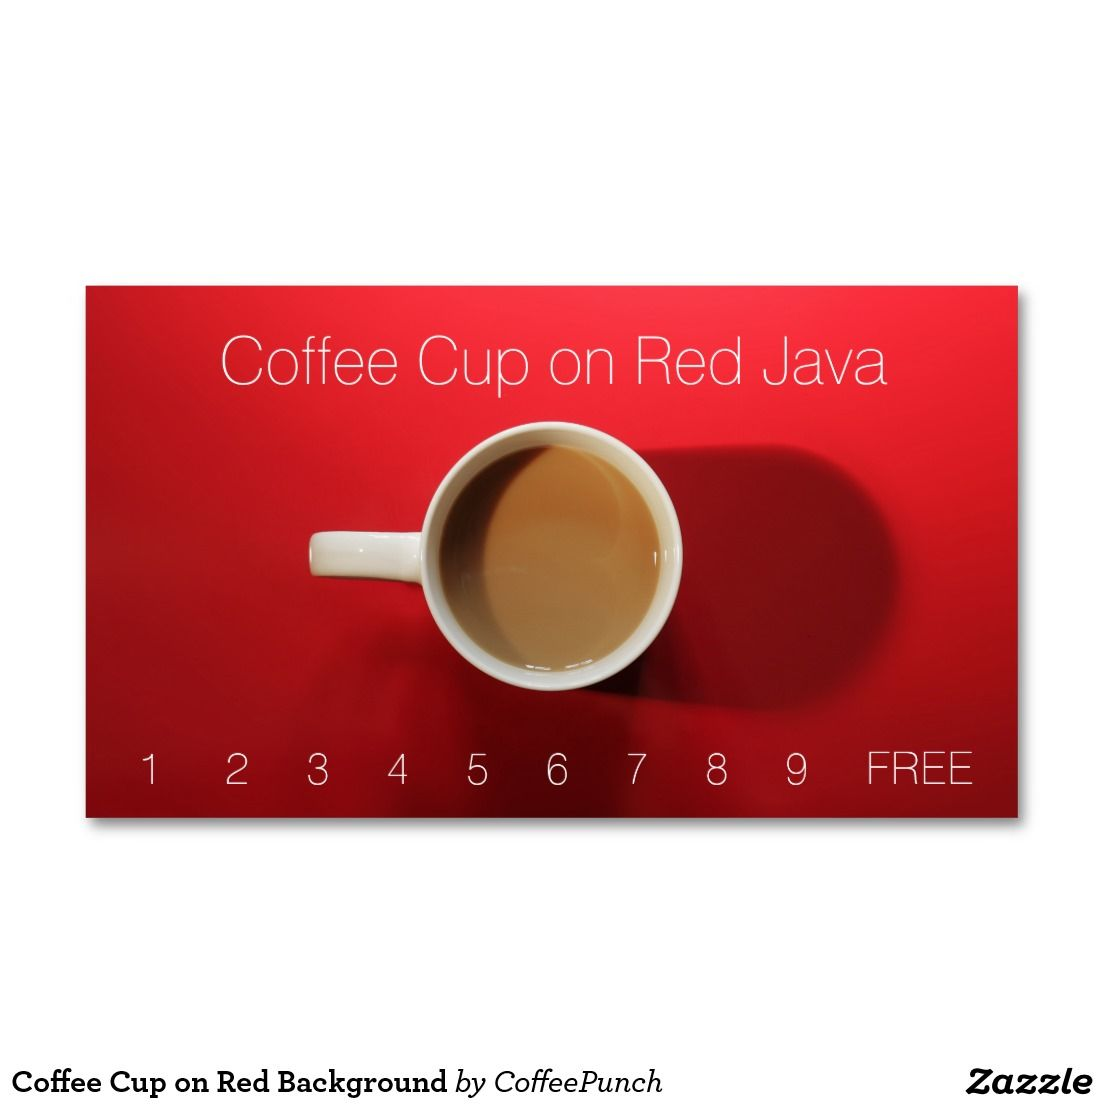 coffee cup on red table business card pinterest coffee cup